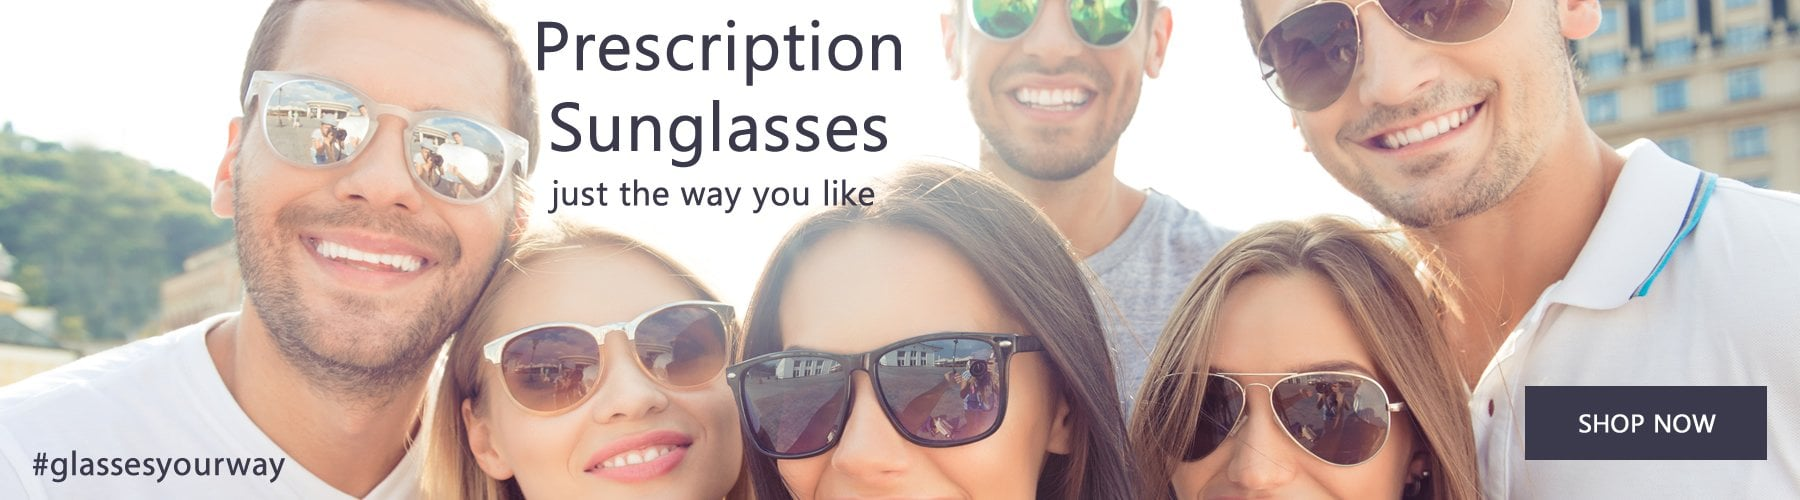 Prescription Sunglasses - Summer - Online Opticians UK